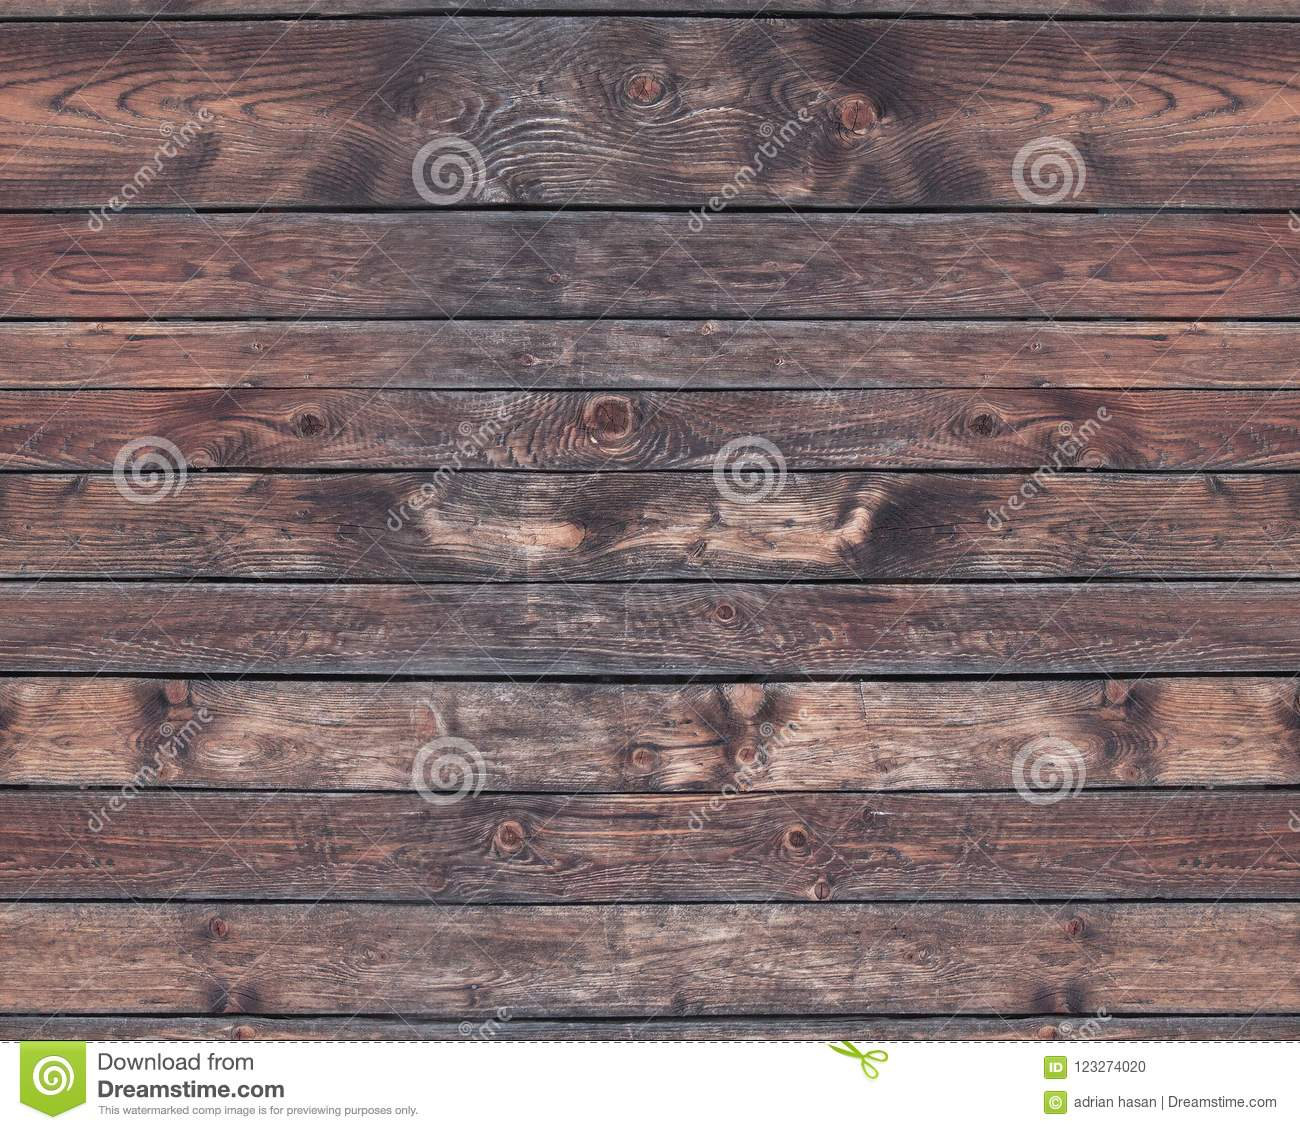 Wood Background Wallpaper Hd Stock Photo Image Of Nature Texture